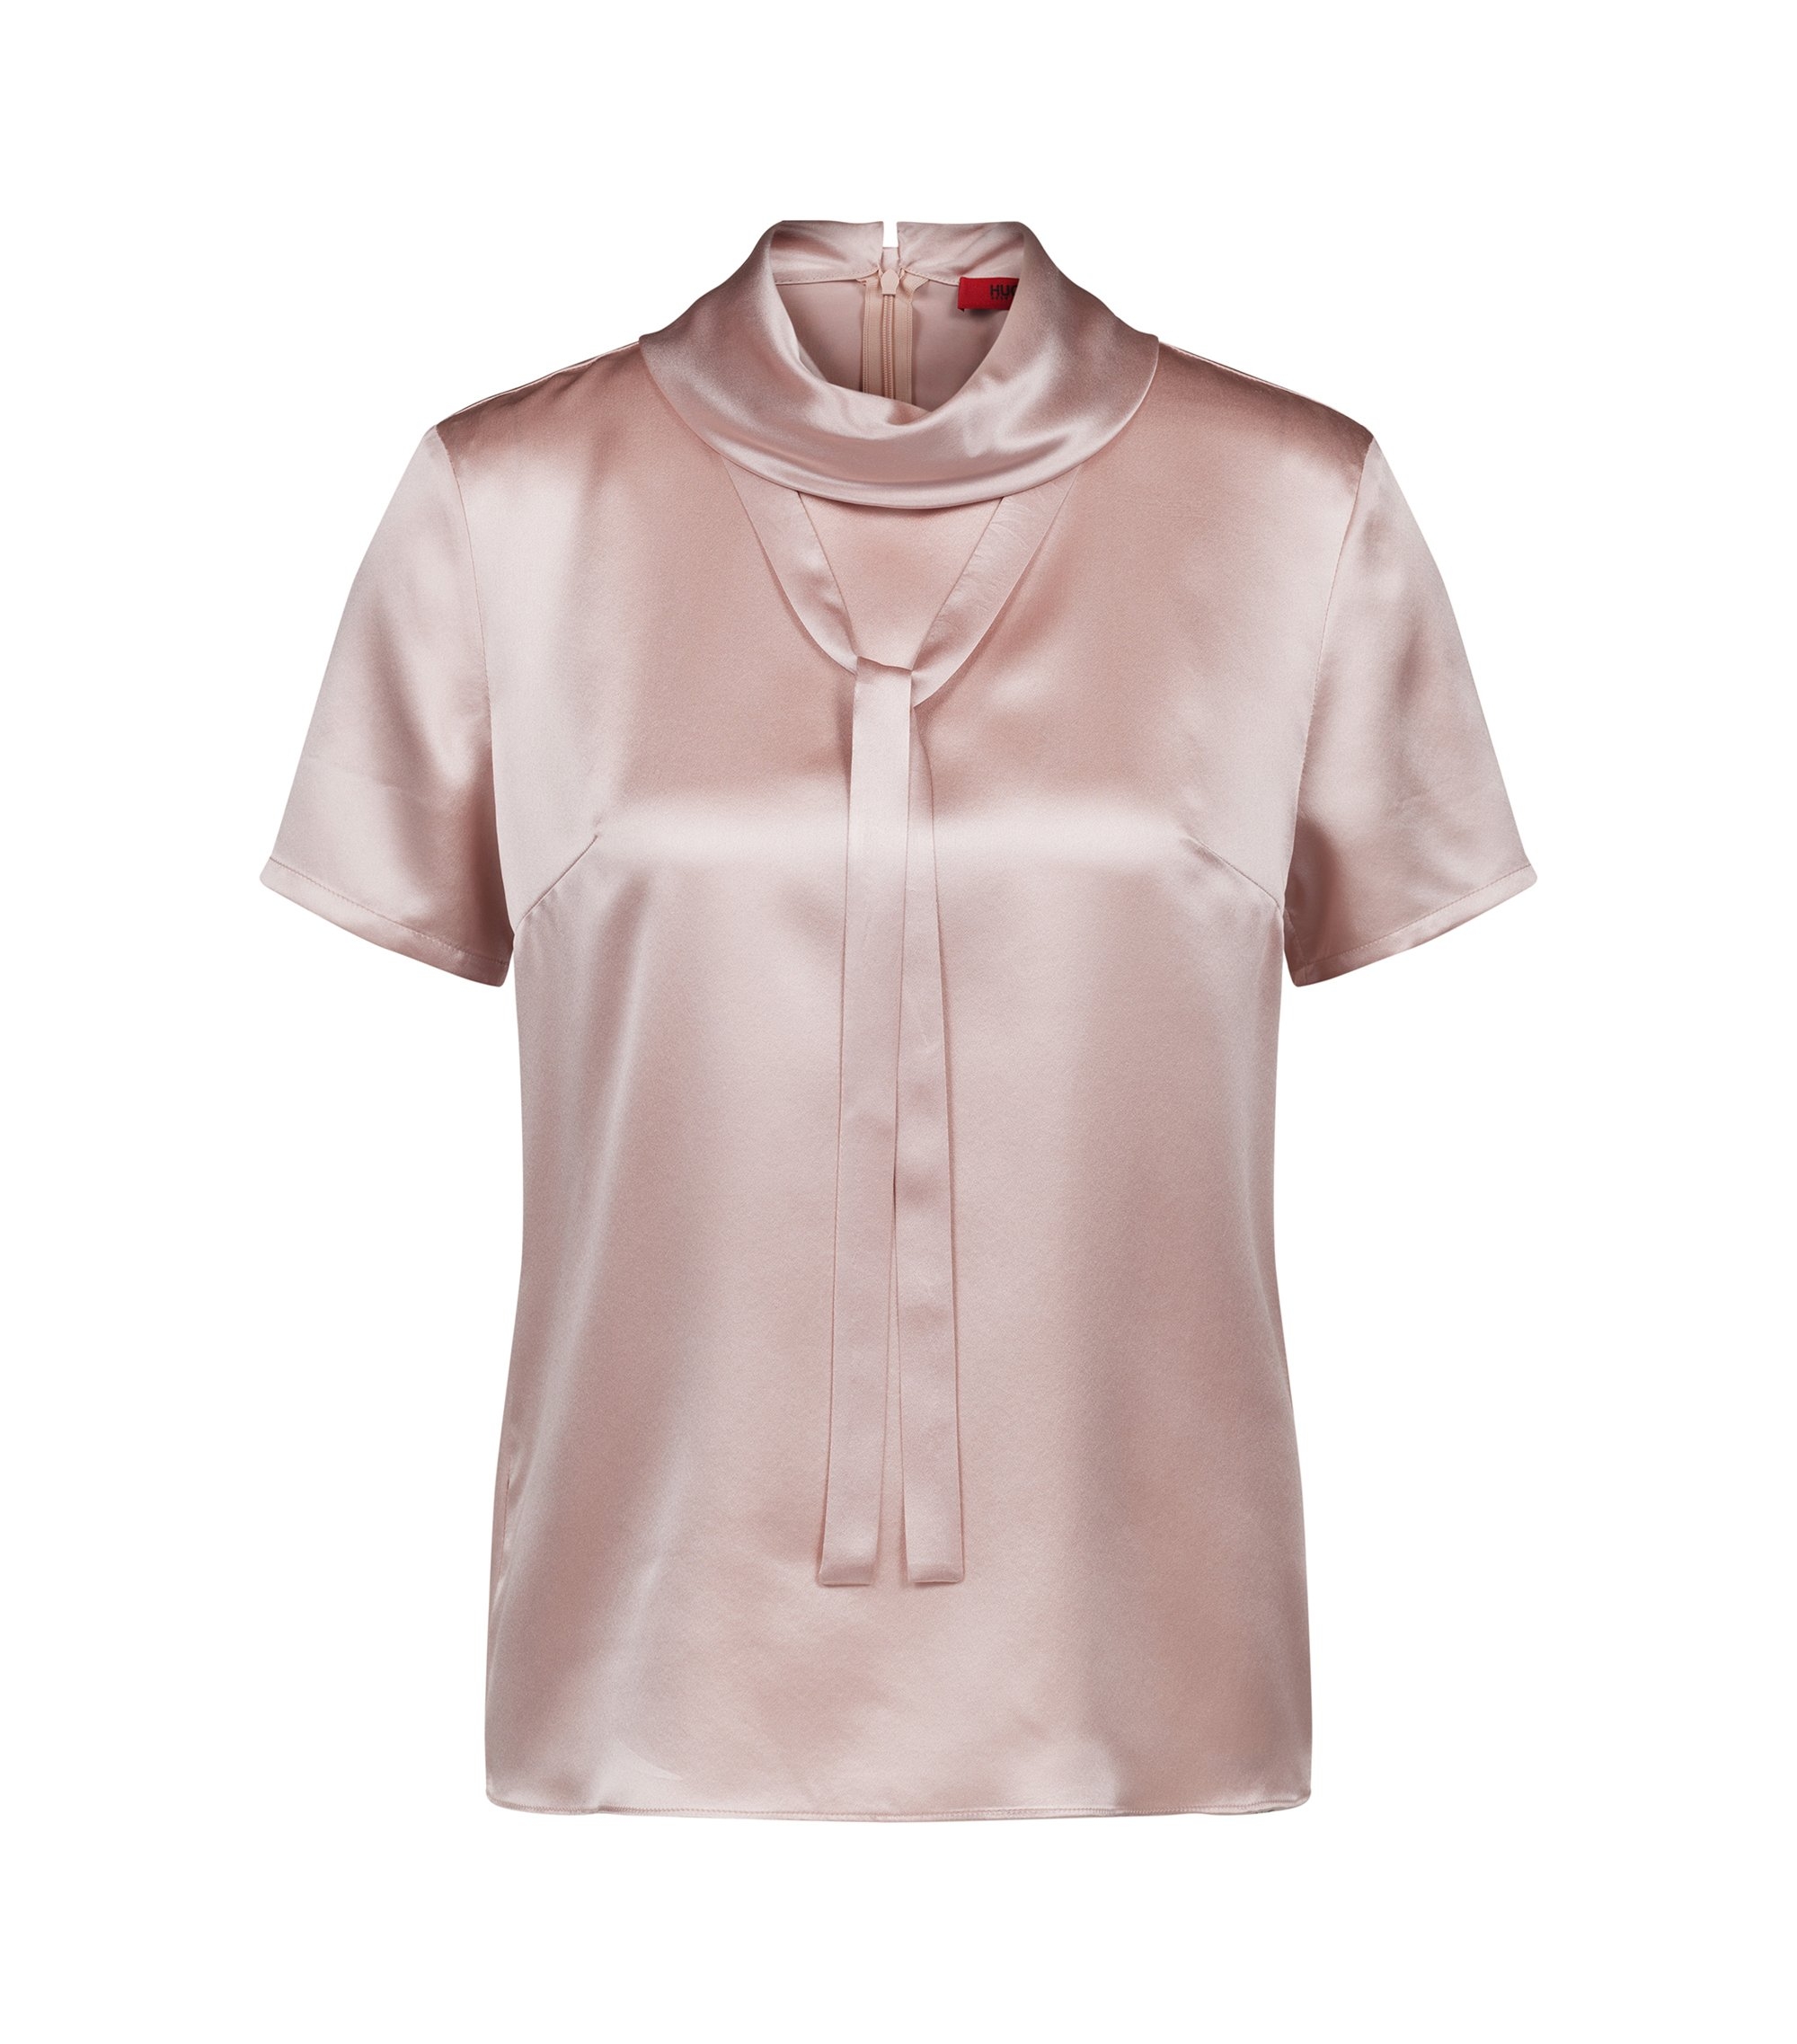 Roll-neck top in stretch silk with bow detail, light pink